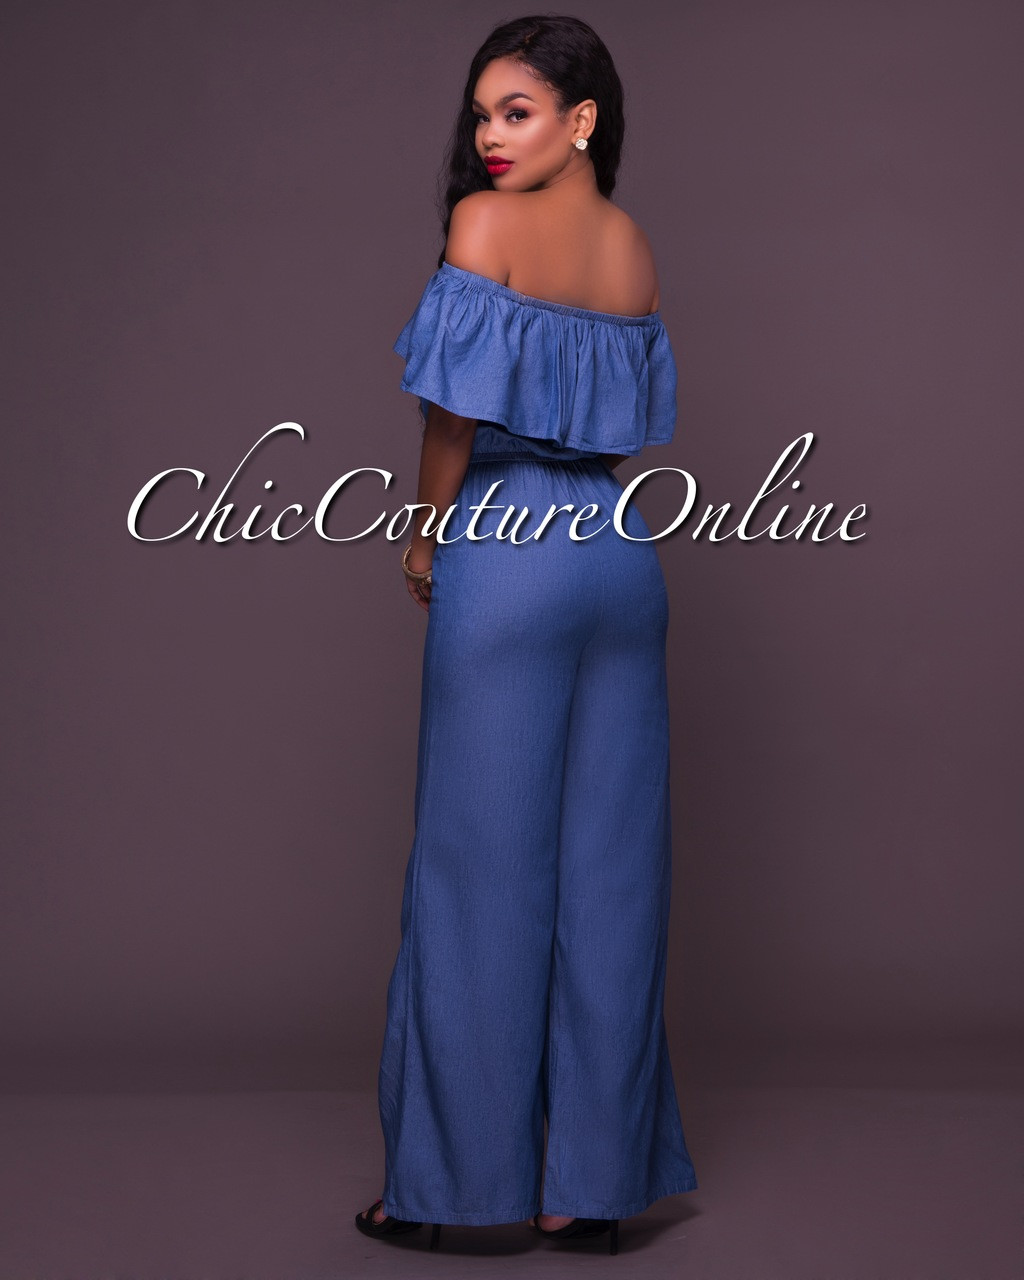 580fb190ed5 Cameron Denim Off-The-Shoulder Ruffle Jumpsuit. Price   48.00. Image 1.  Larger   More Photos